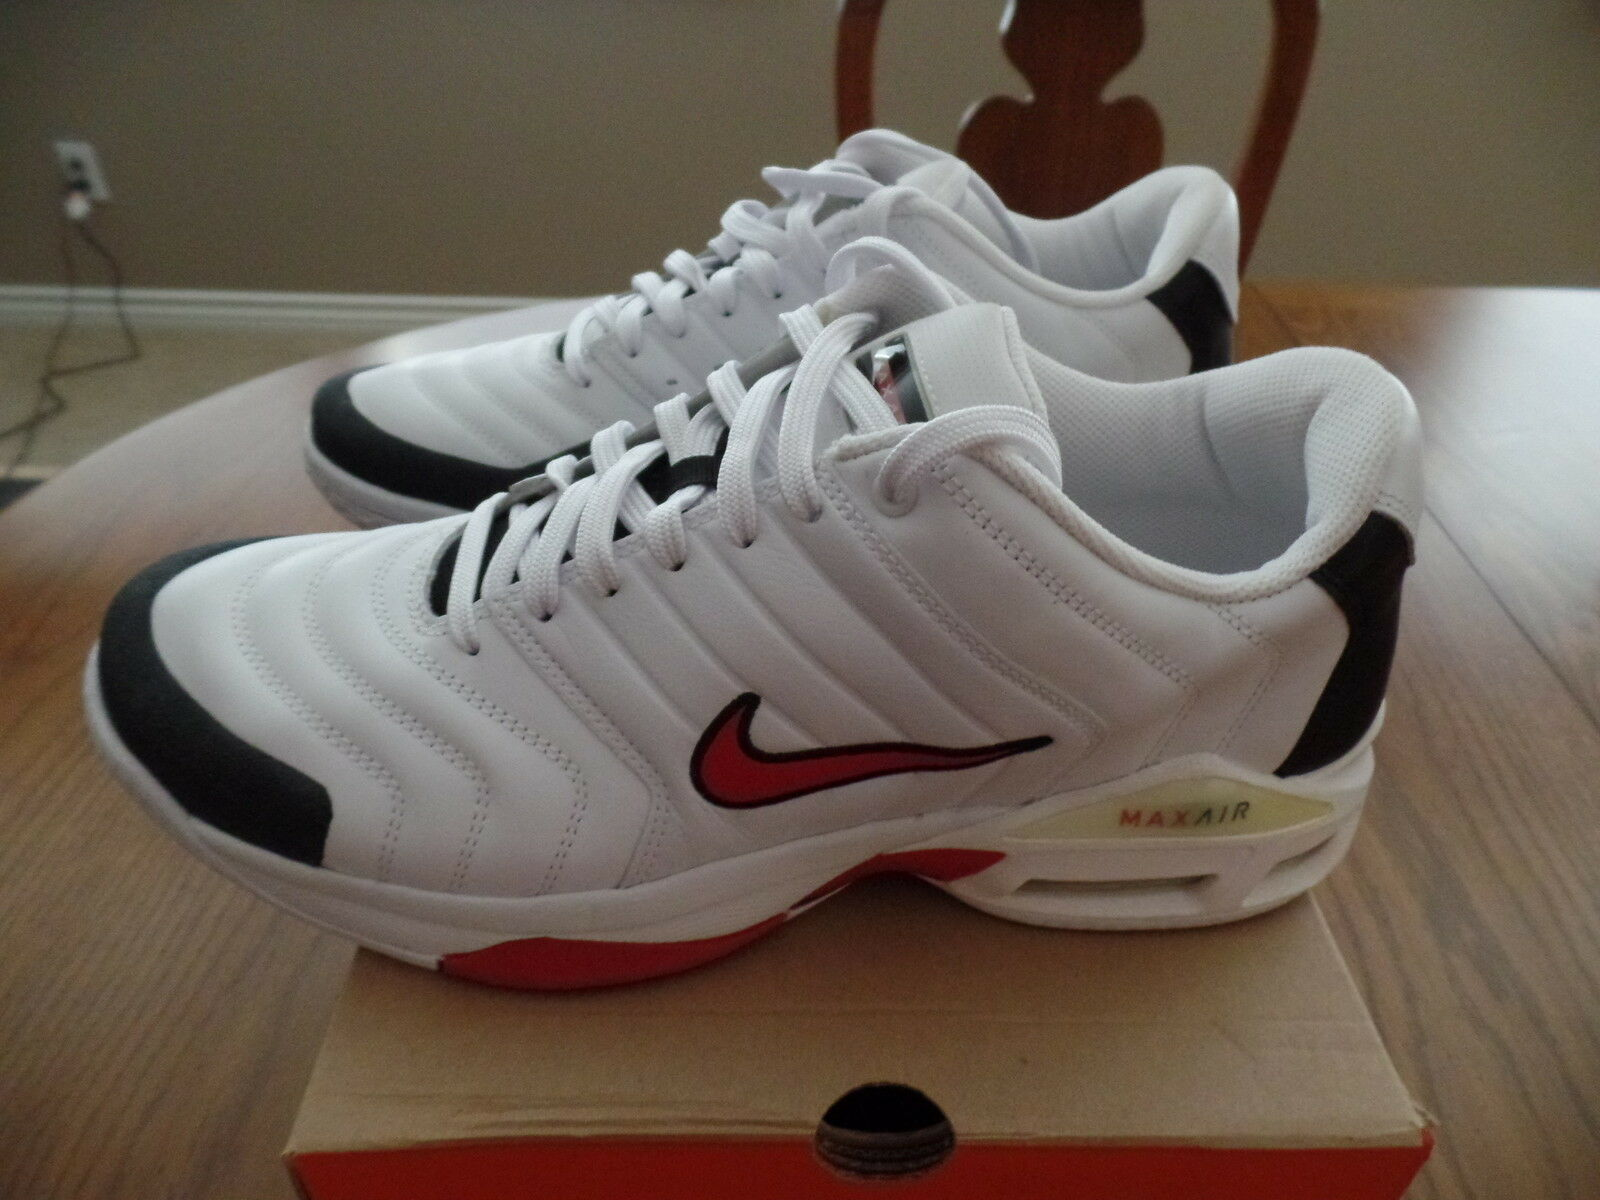 buy online 365f1 7e1df Nike Air Max Nike Smash Basketball shoes Brand New, New, New, Unworn Size